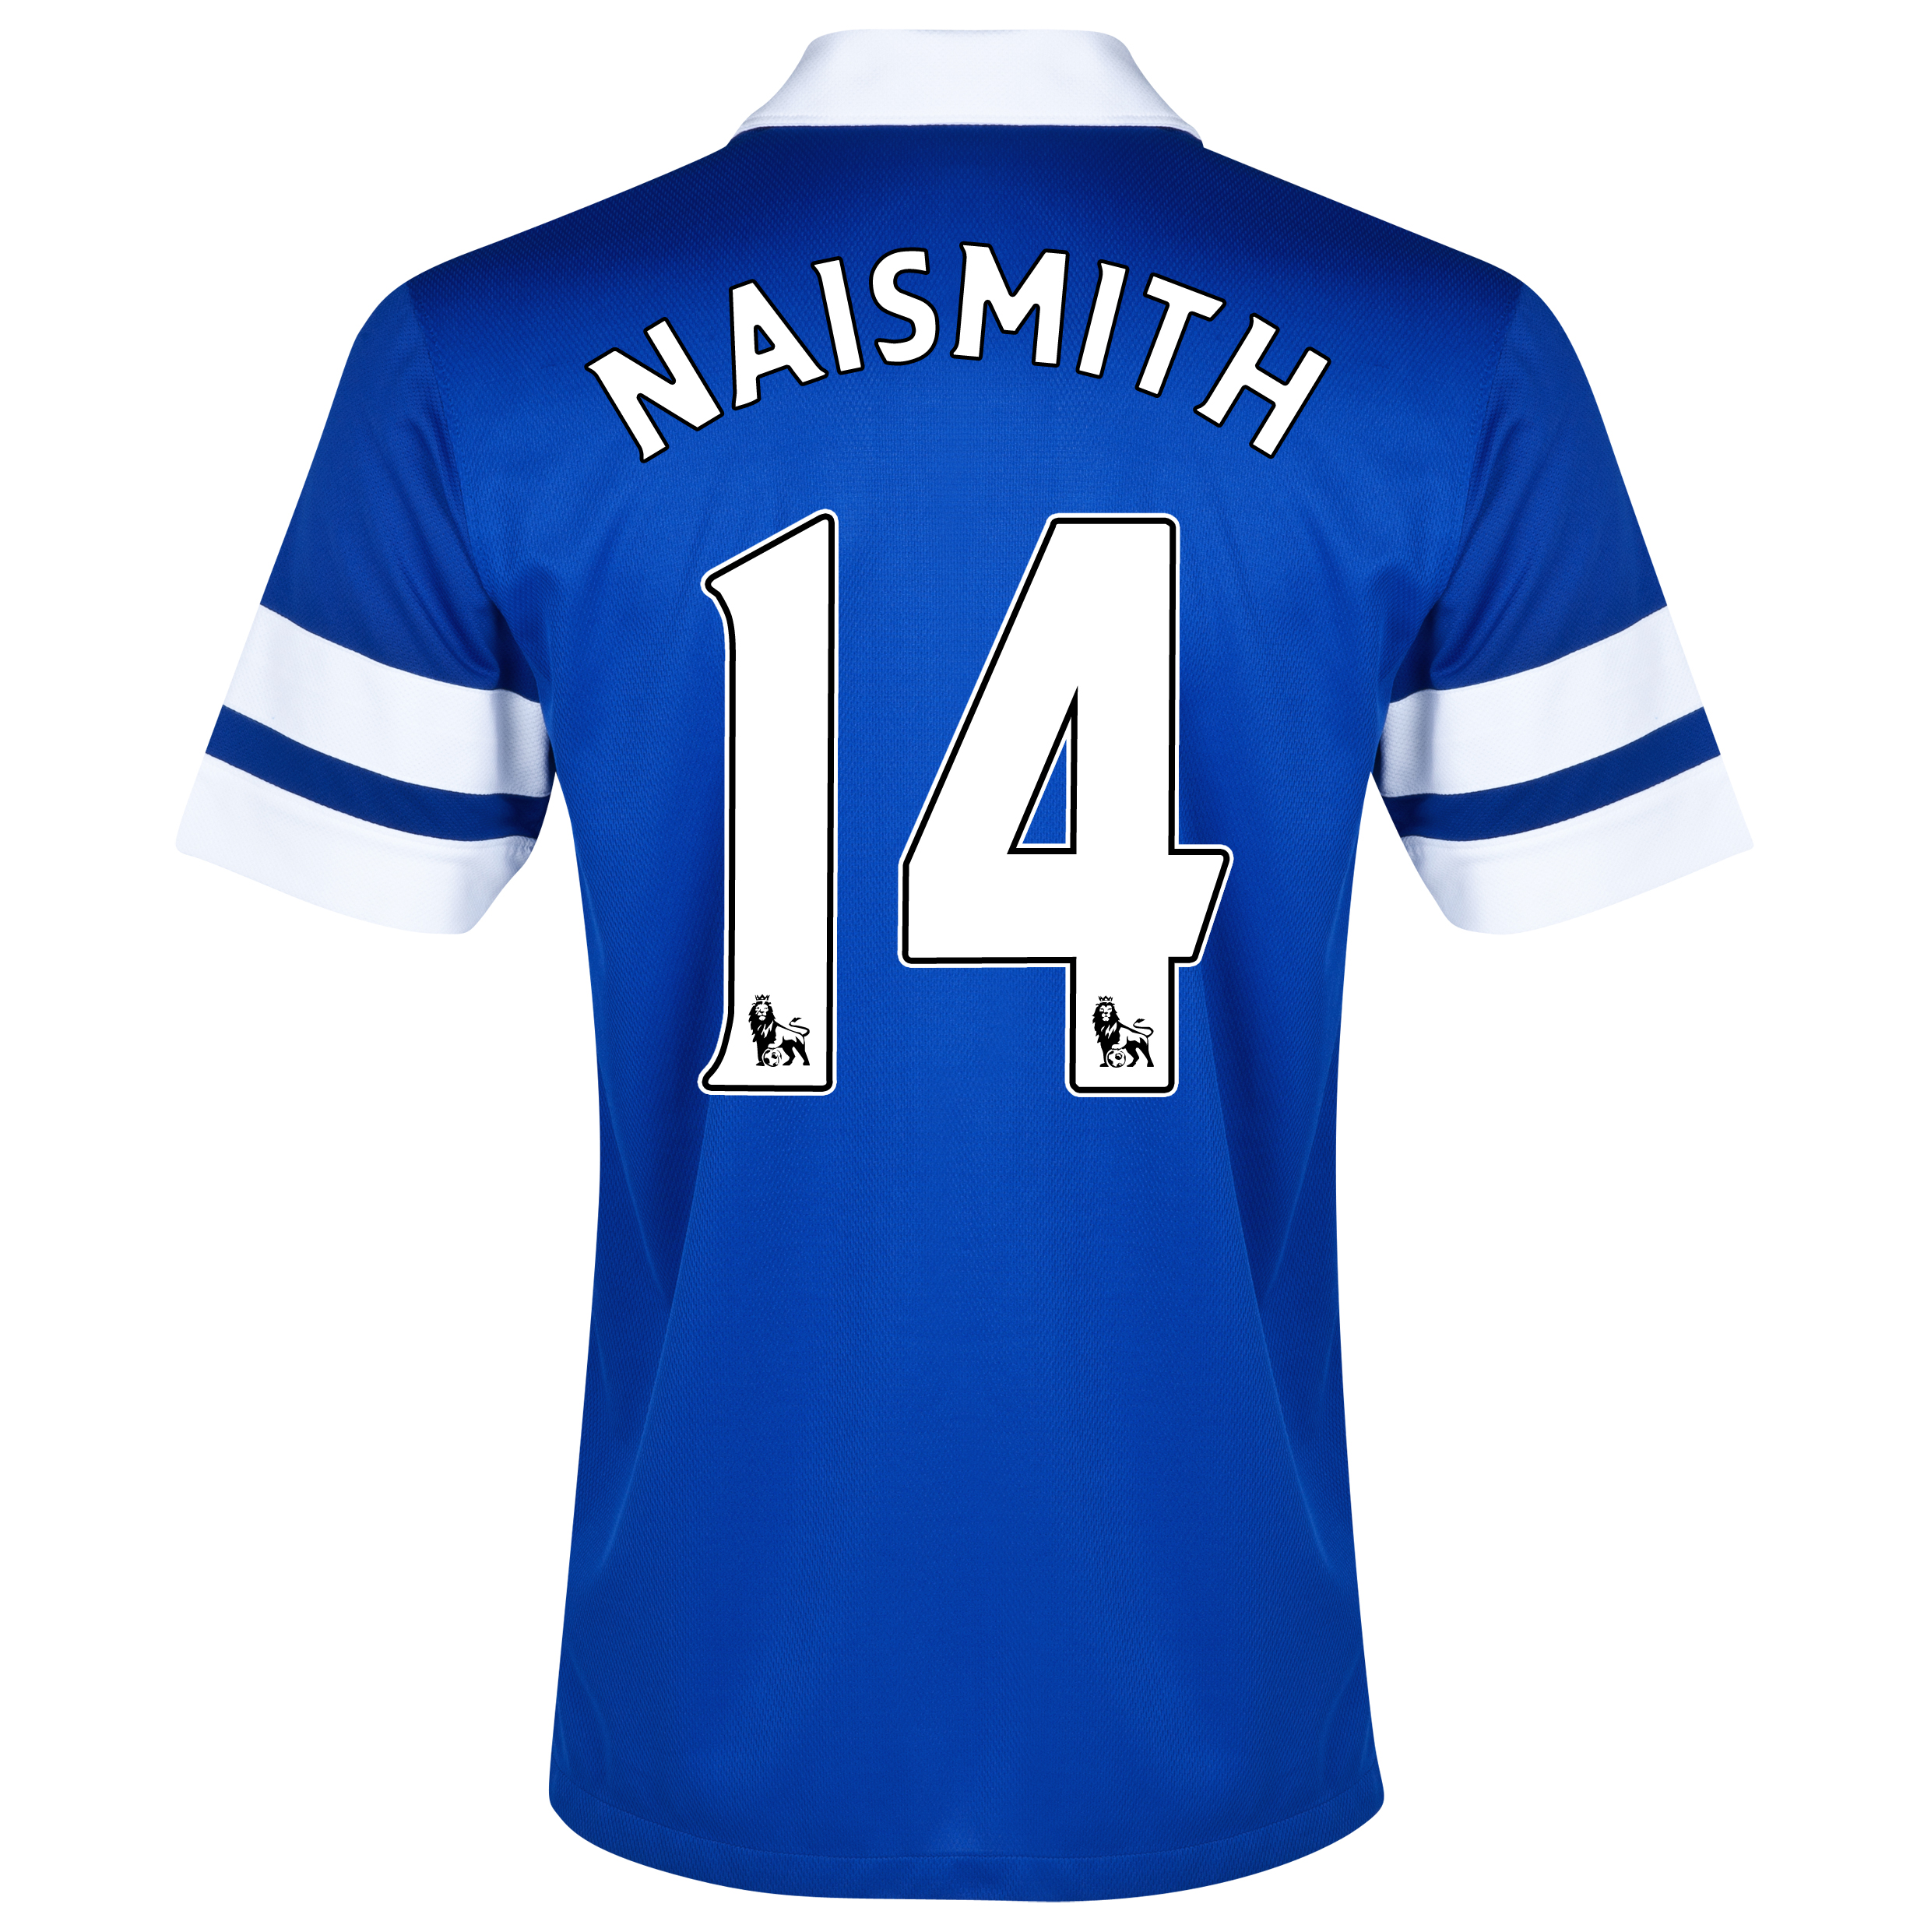 Everton Home Shirt 2013/14 Blue with Naismith 14 printing